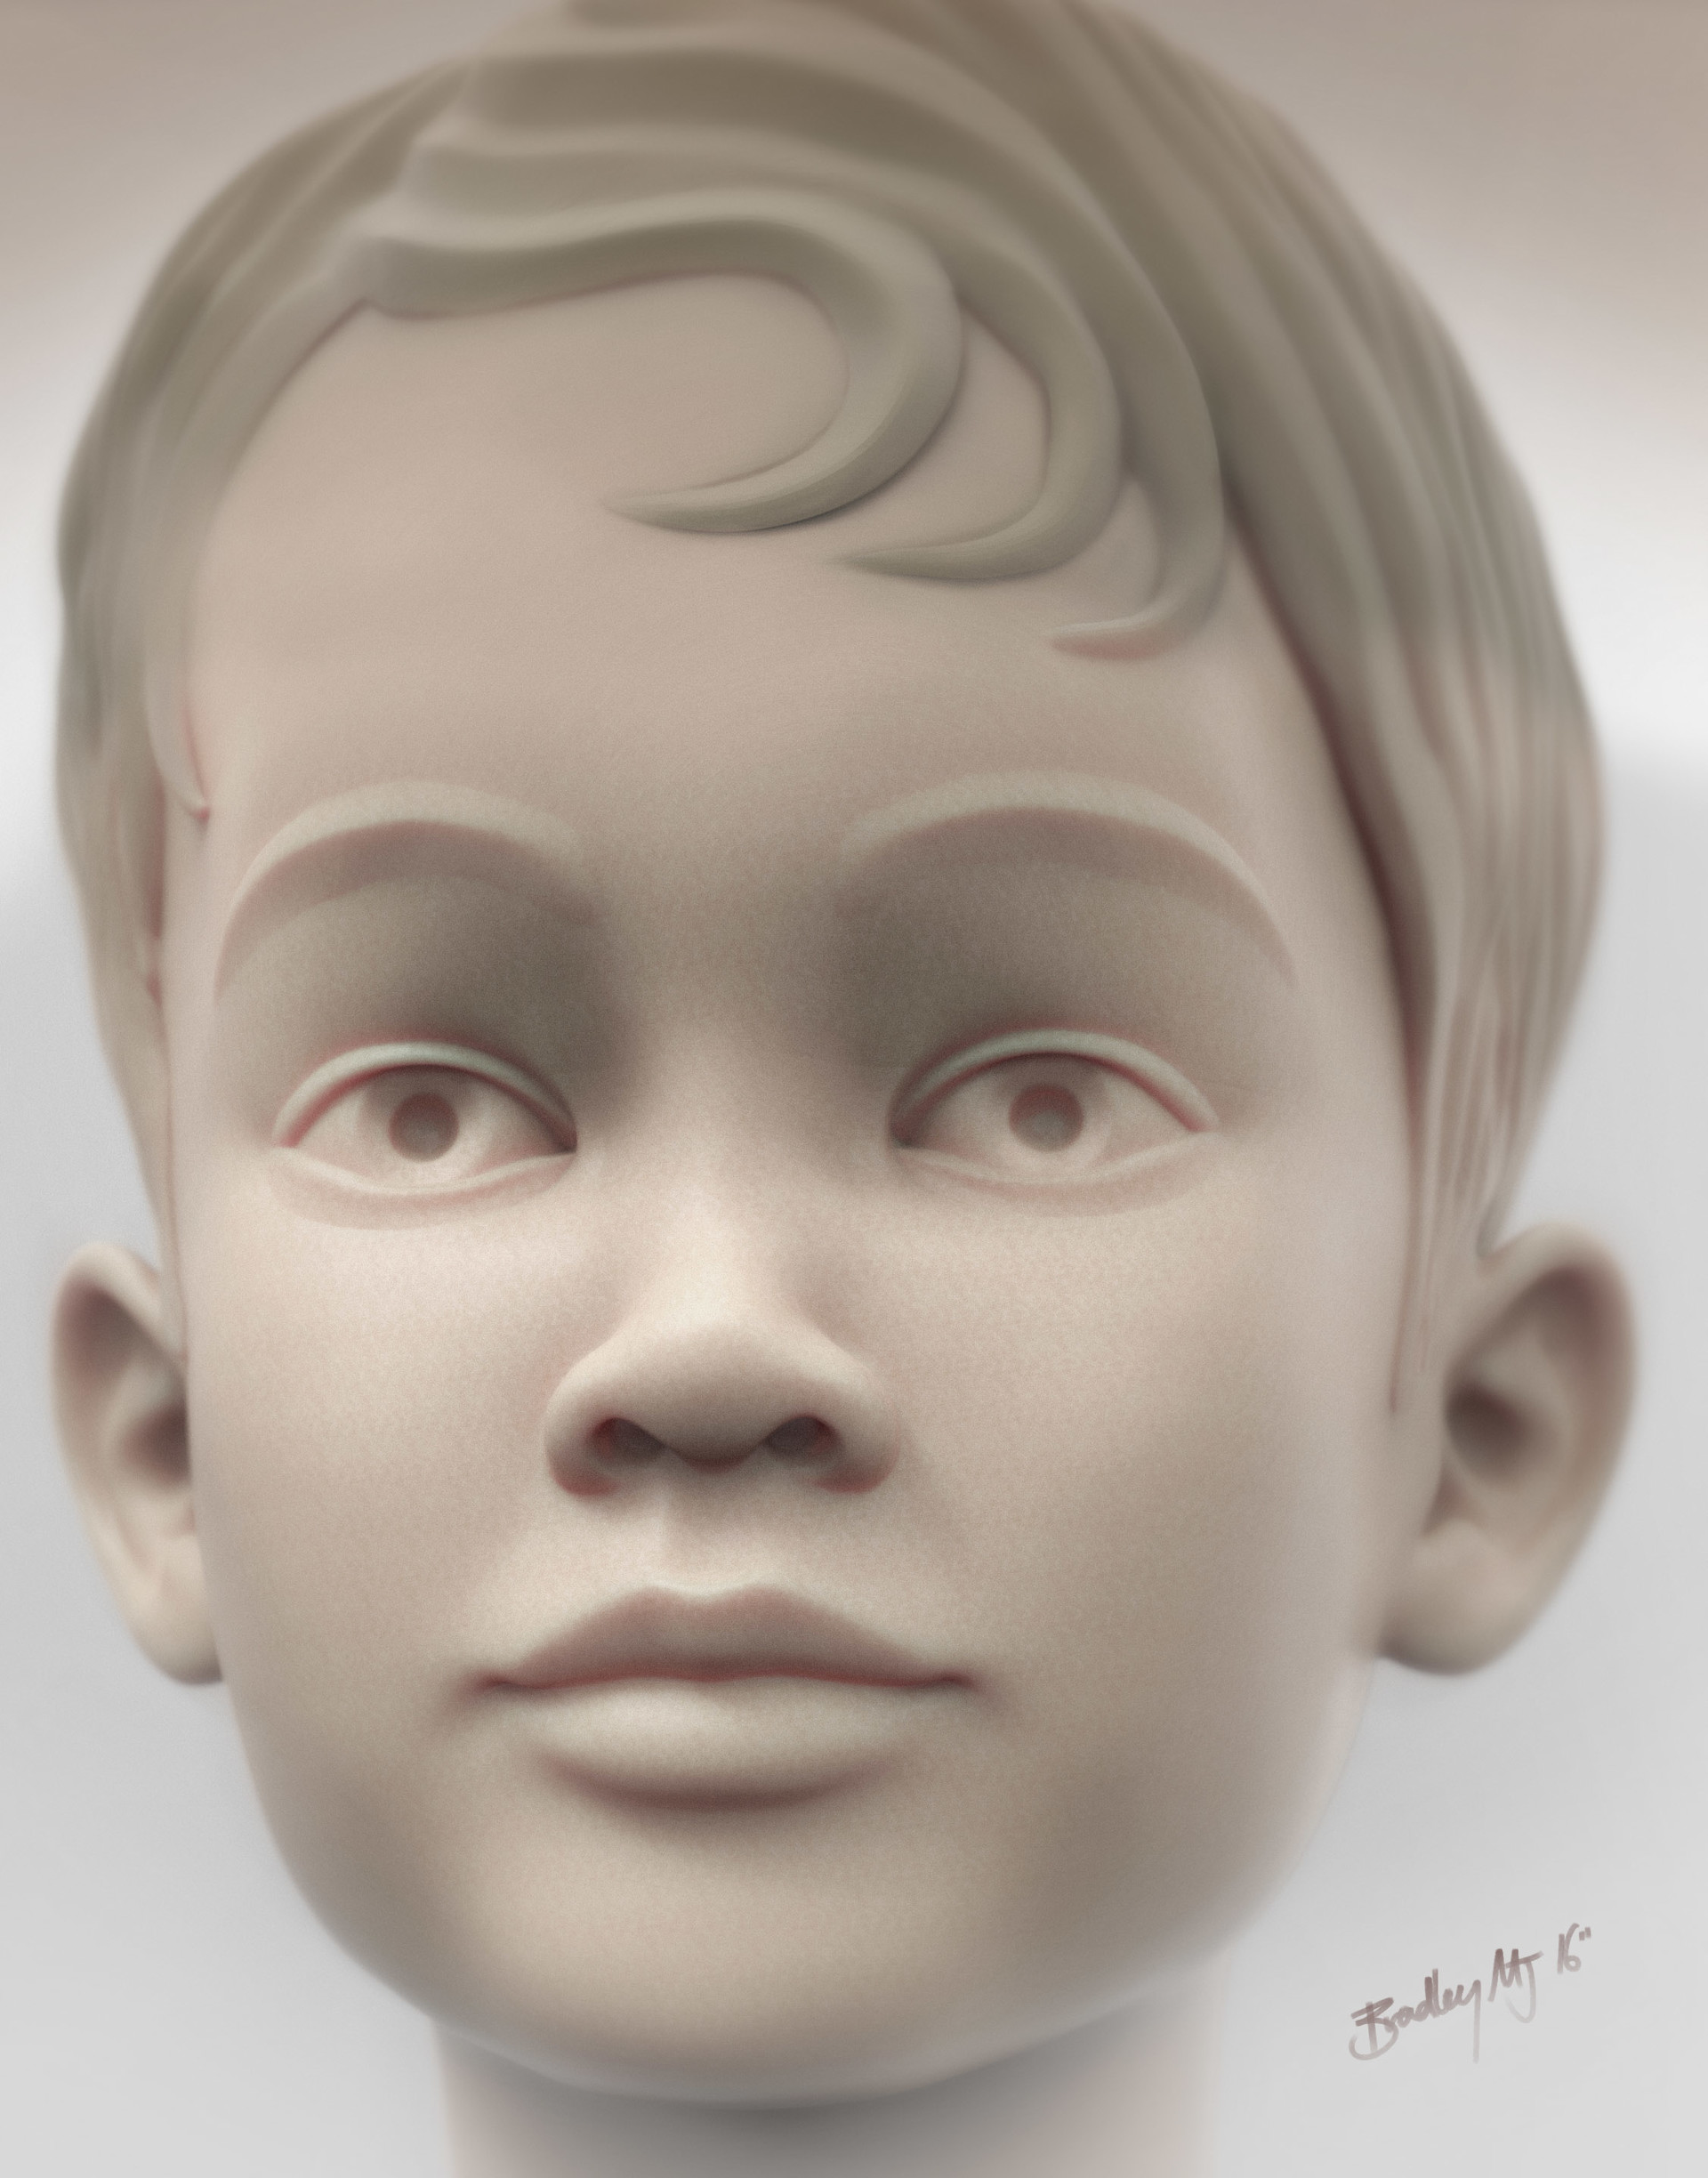 Bradley morgan johnson achie bust final beauty render fav angle